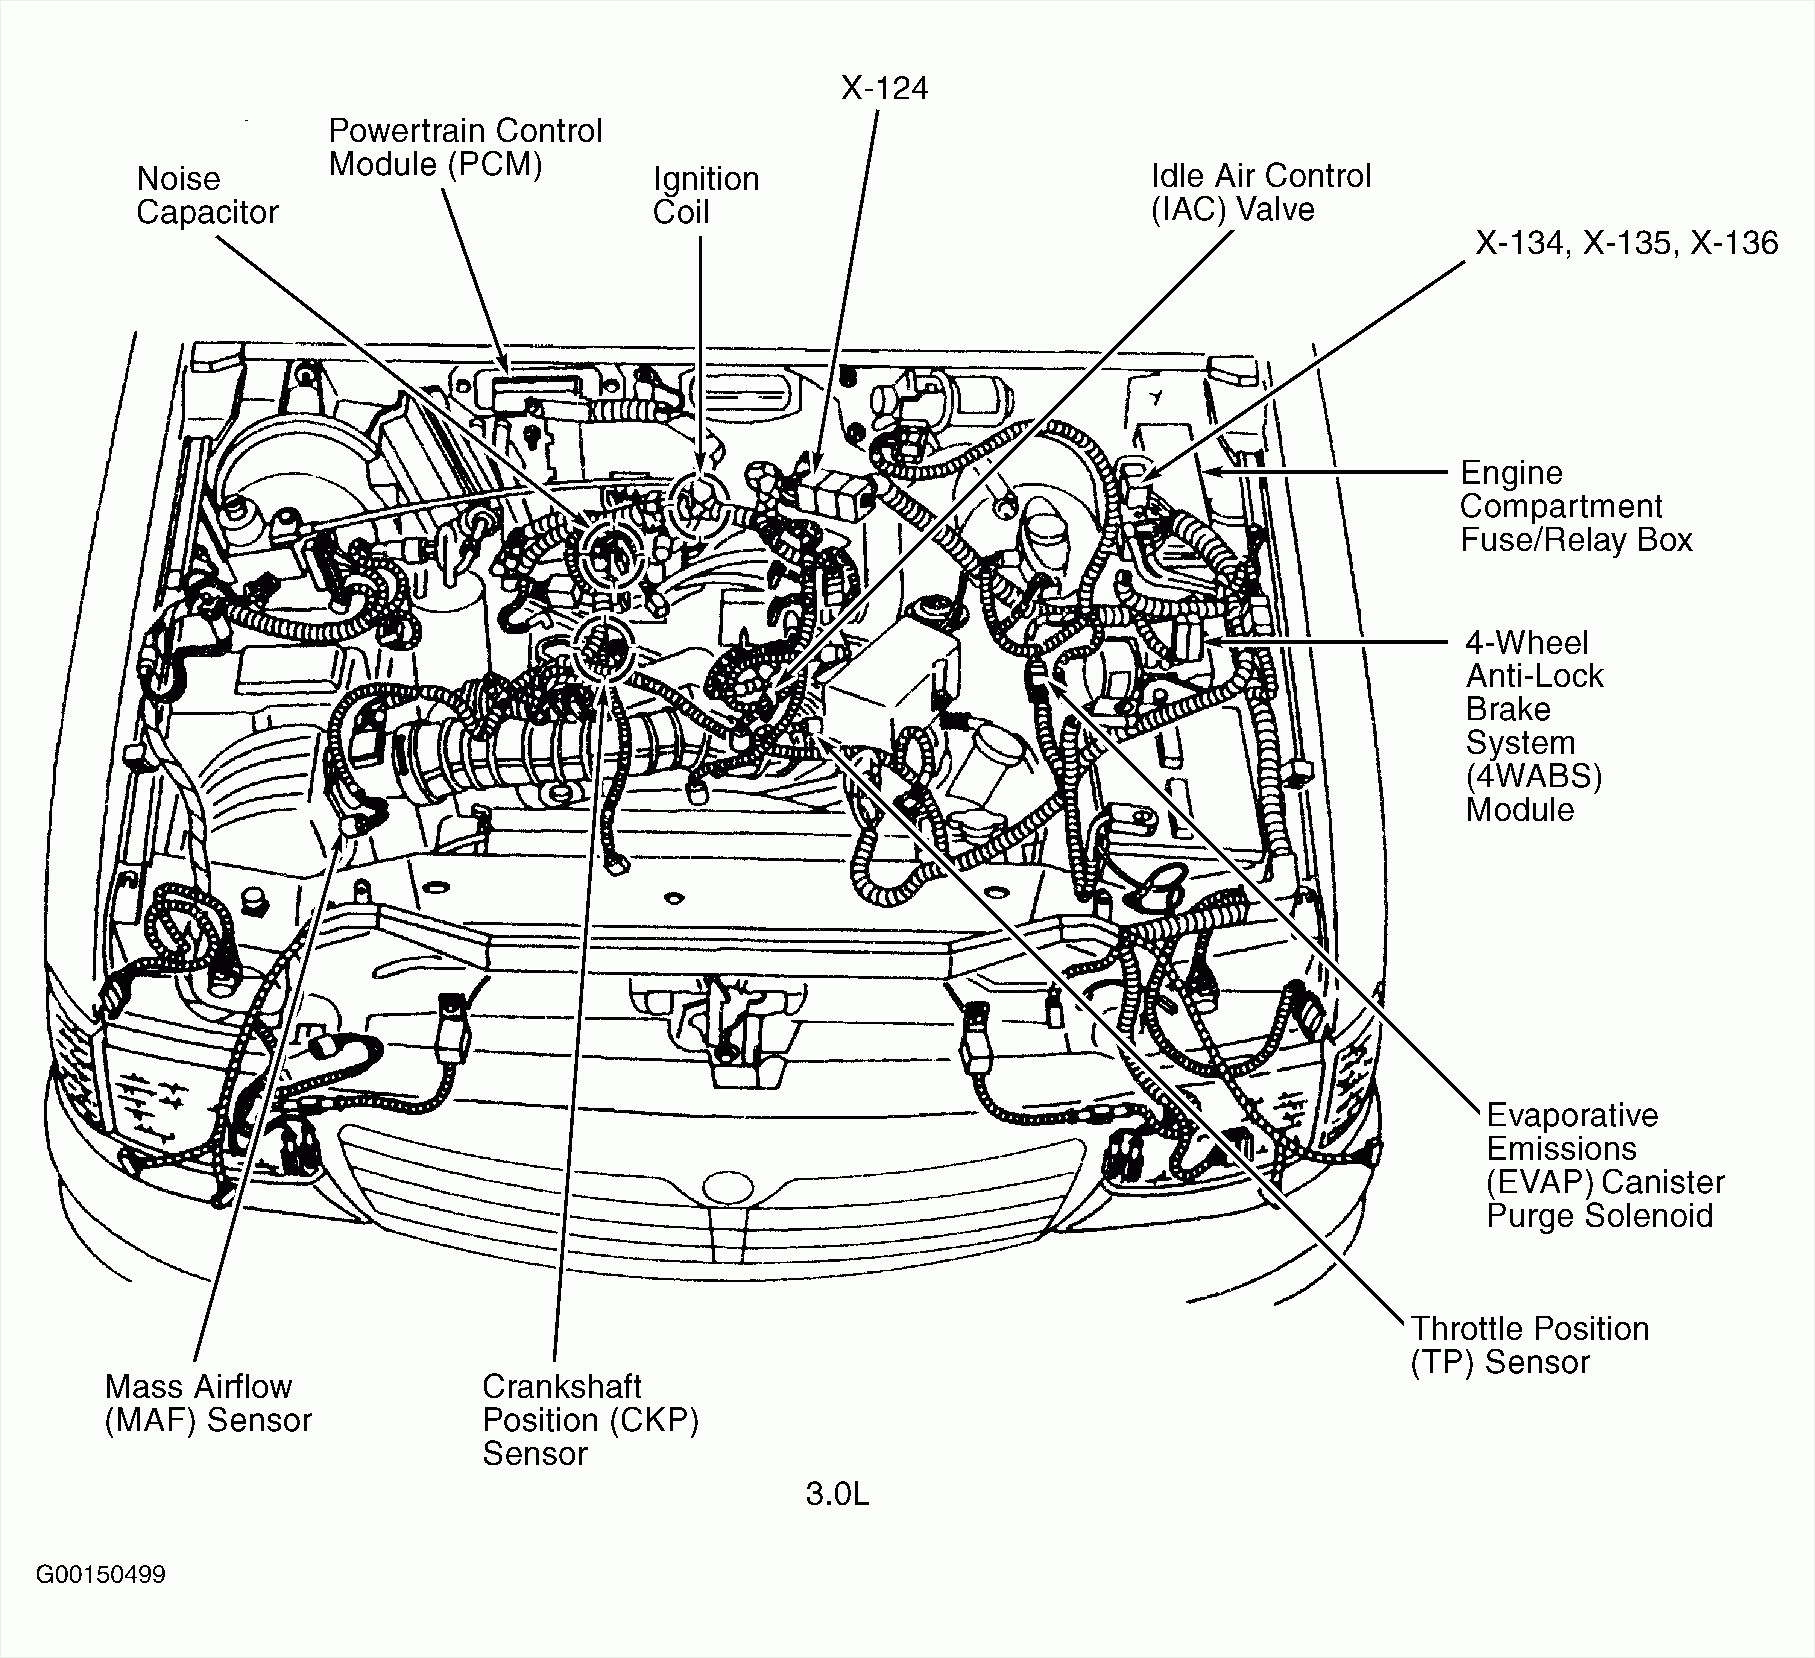 Engine internals diagram 2004 mazda 6 v6 engine diagram wiring 2004 mazda 6 v6 engine diagram wiring diagrams publicscrutiny Images